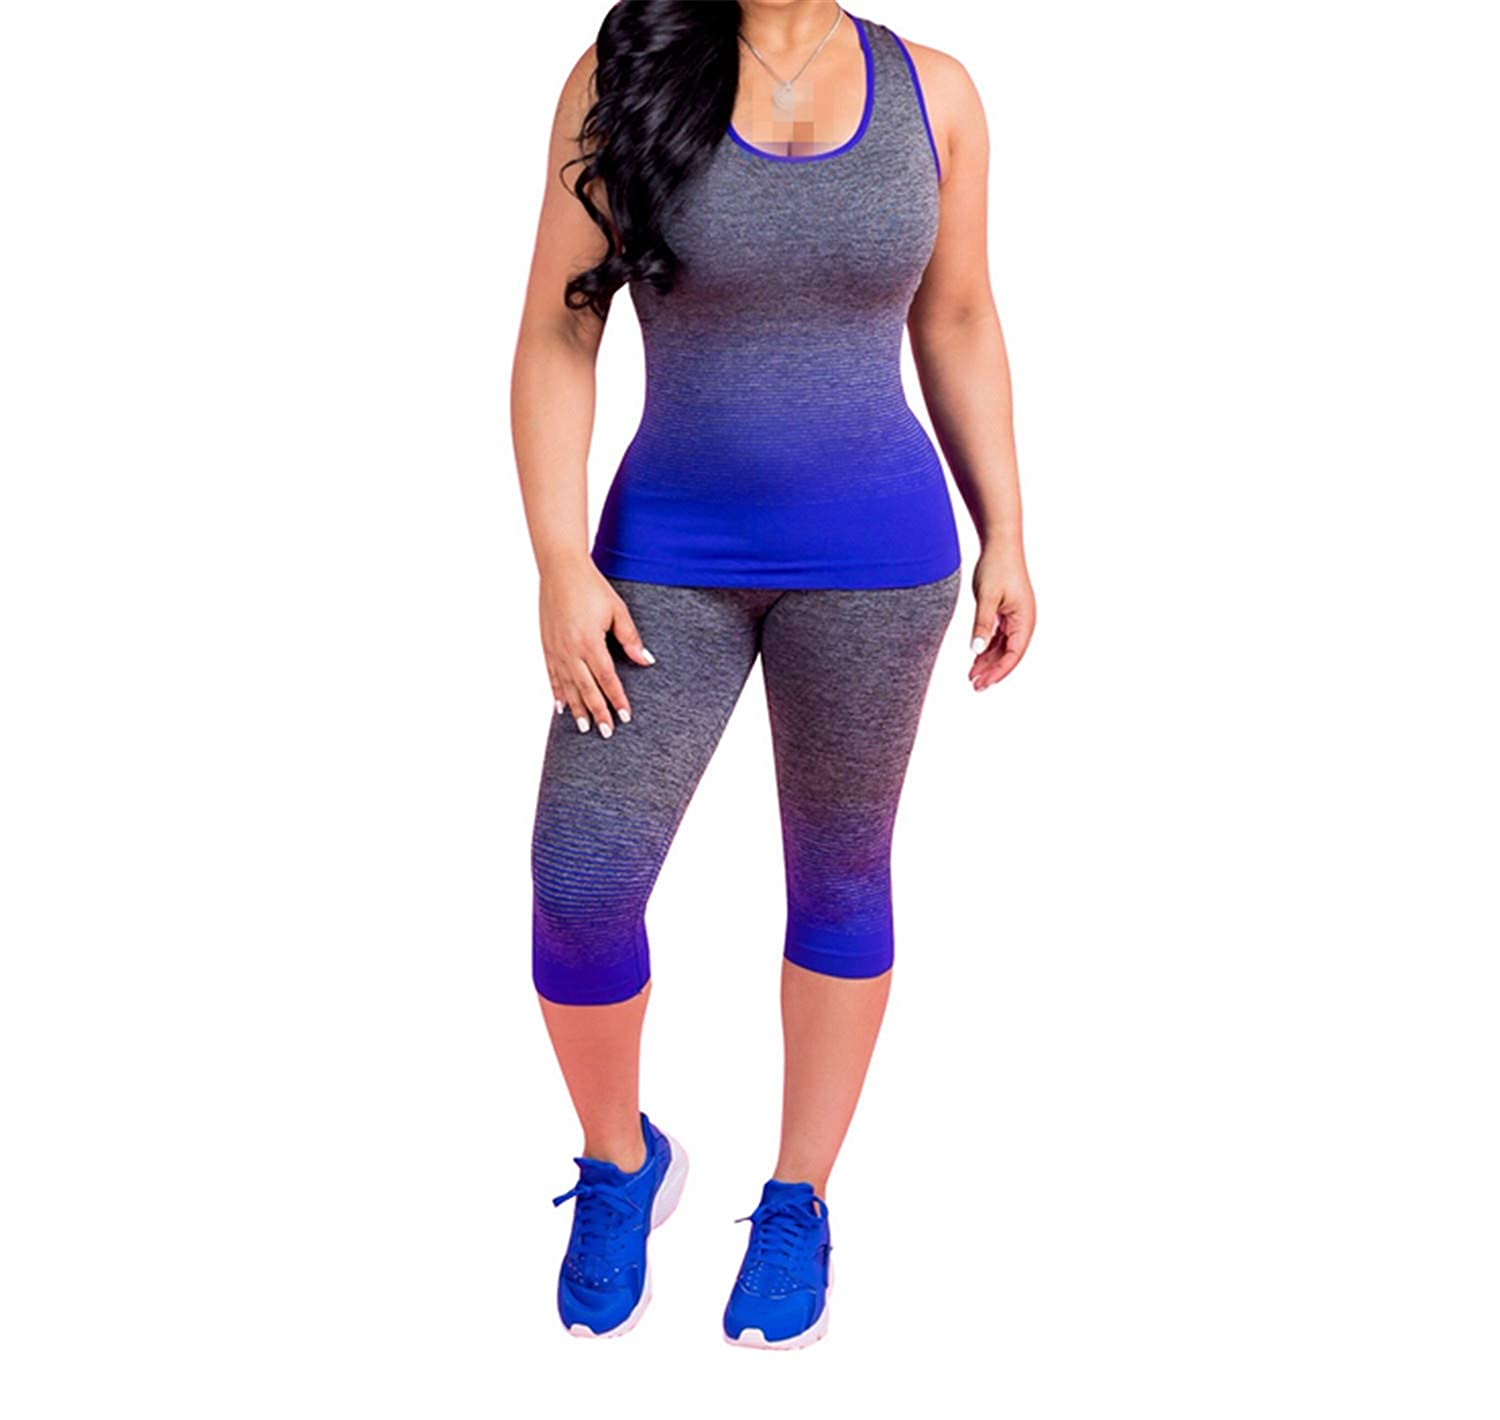 bluee Yoga Clothing Women Gym Suit Gradual Sports Vest Pants Push Up Running Tights Workout Legging High Waist Tummy Outdoor Indoor